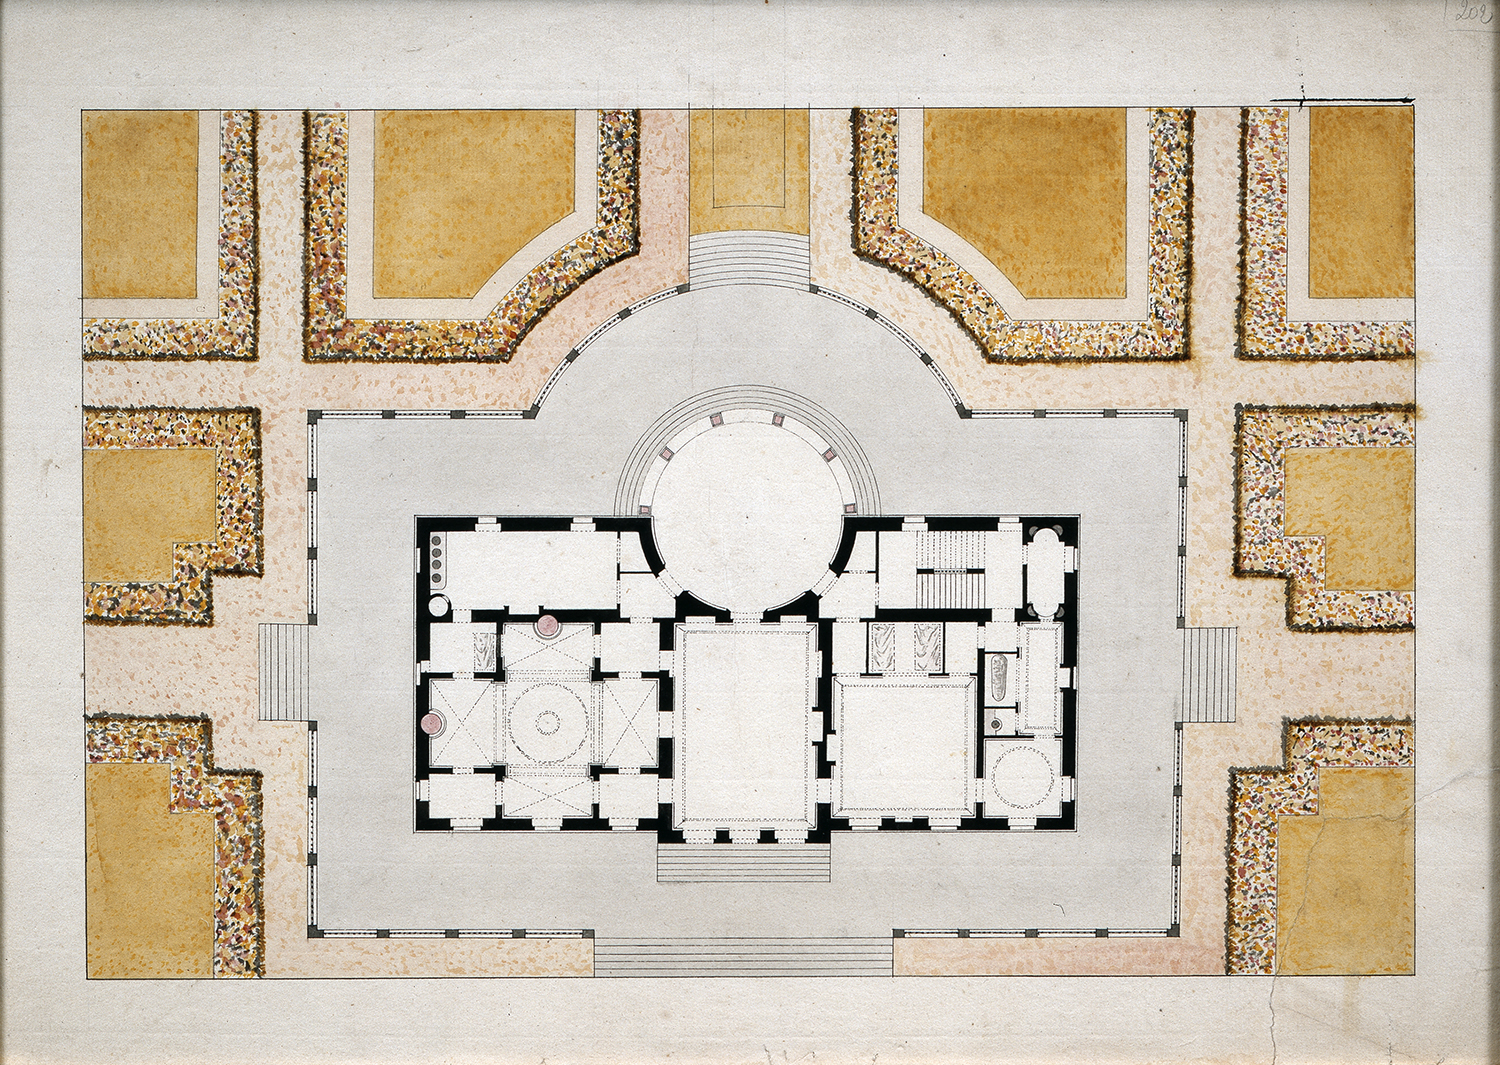 François Leonard Seheult, France,  Plan of Building and Grounds,  c. 1800, pencil, ink and watercolor, 16 3/4 x 22 1/4""